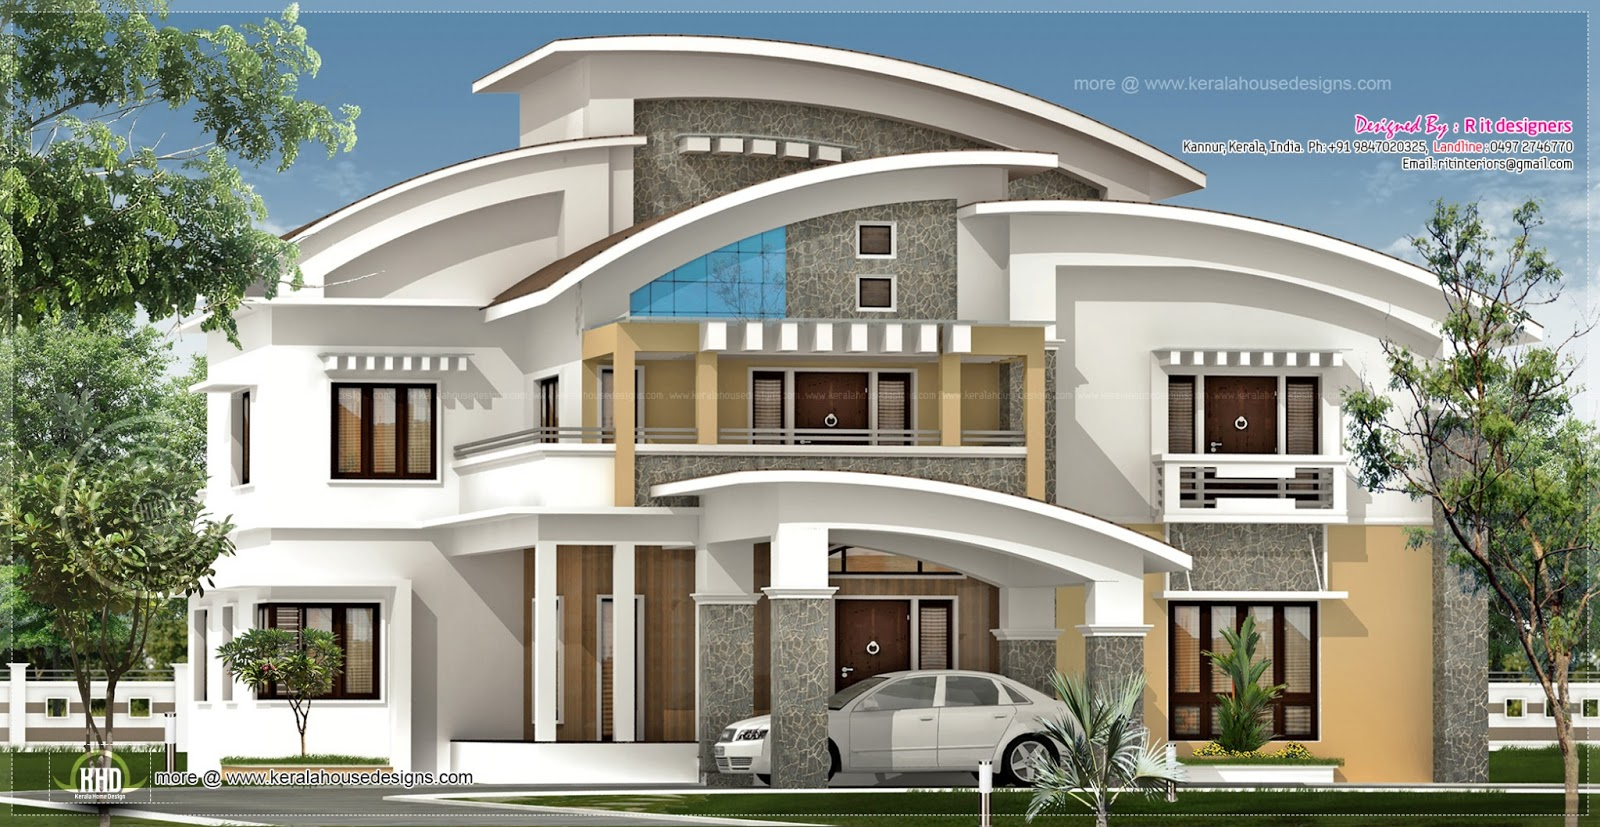 Small luxury house plans luxury house plans and designs for Luxury home designs and floor plans